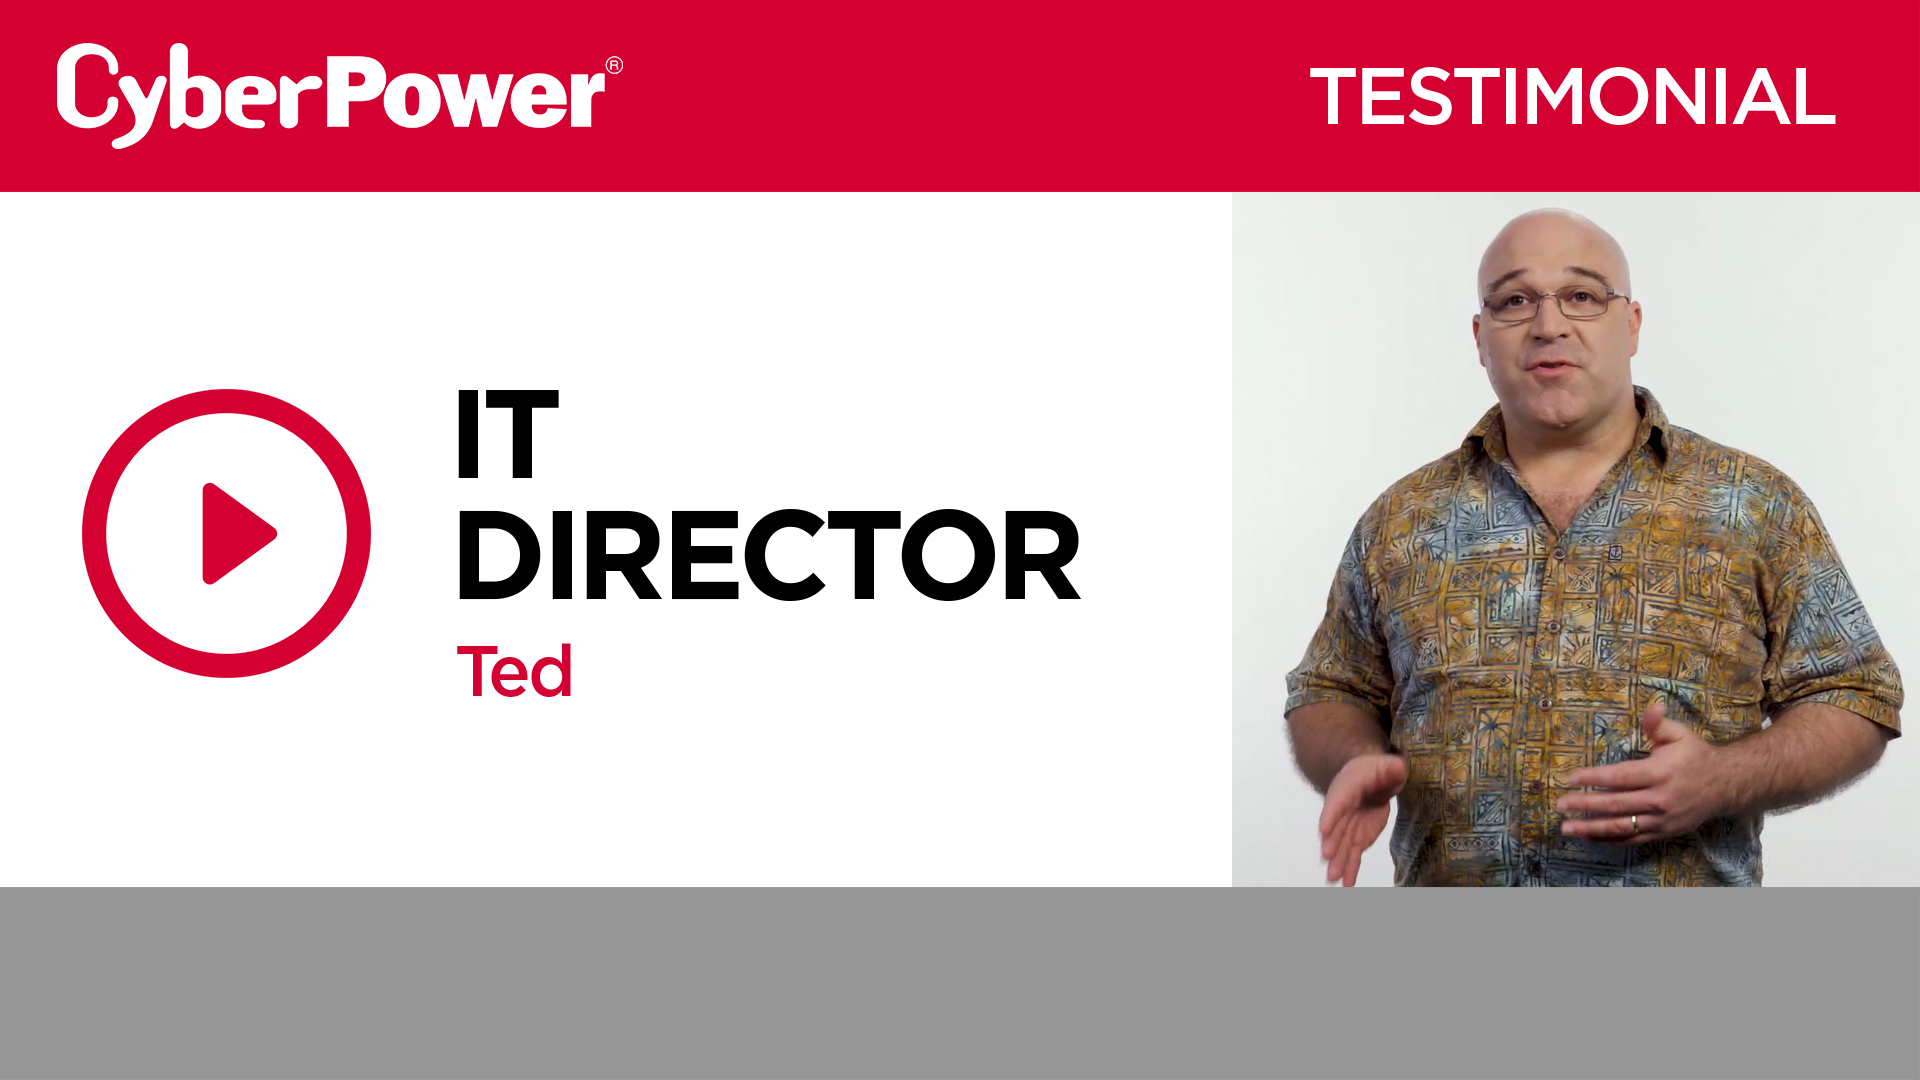 Ted IT Director Testimonial